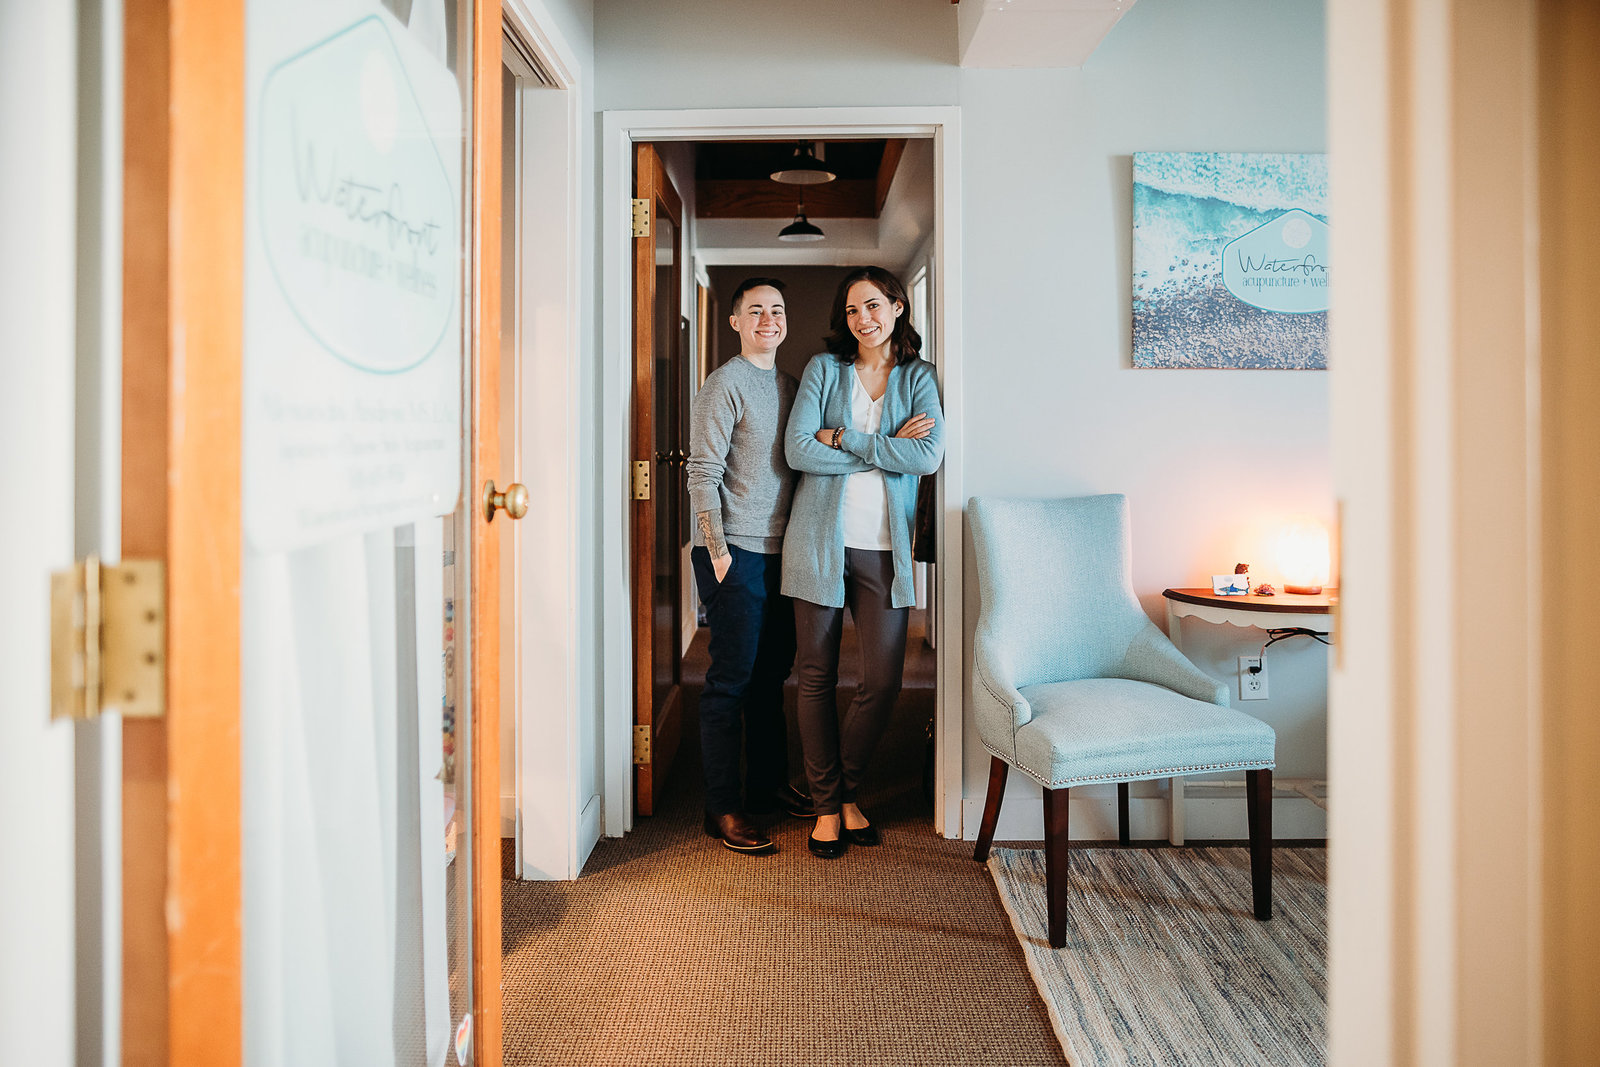 two women stand in doorway of clinic for branding shoot south shore ma